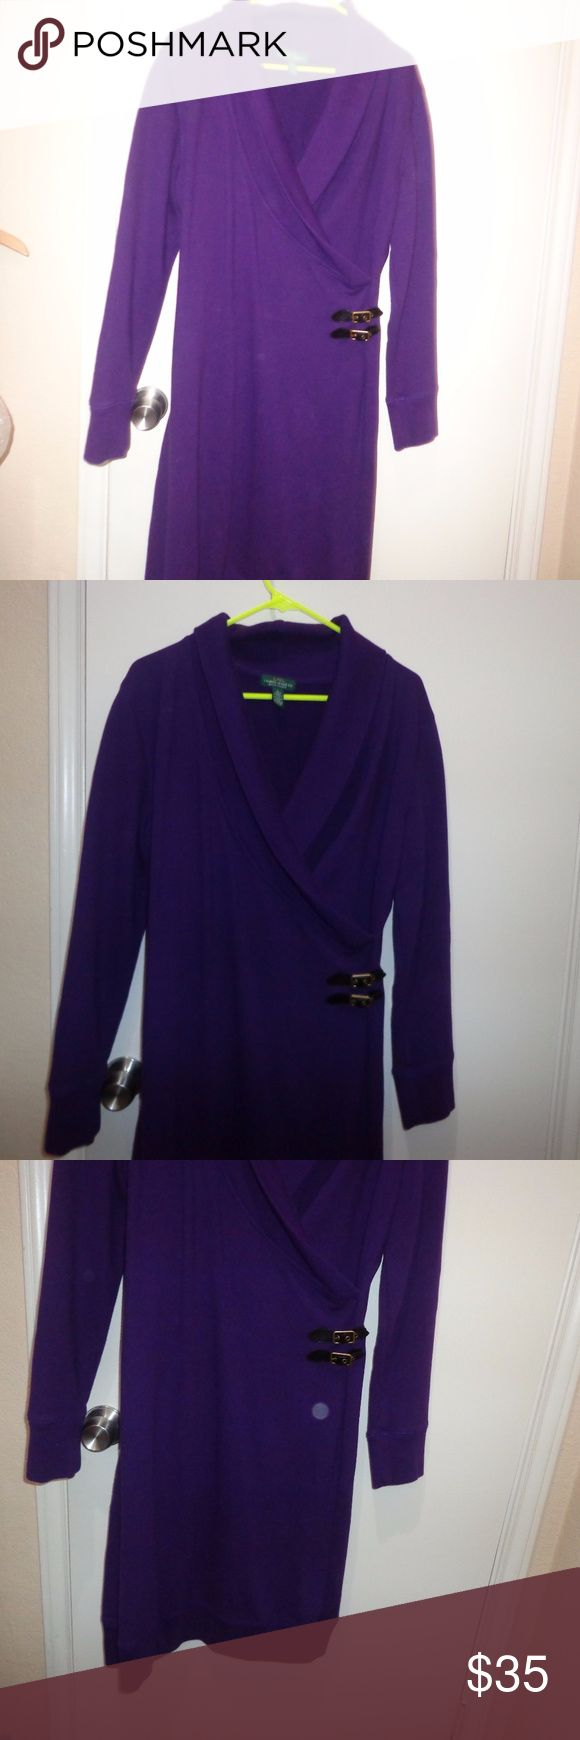 Large - Lauren Ralph Lauren Jeans Dress purple LRL - Lauren Jeans Co Ralph Luaren  purple, cowl neck , kinda sweatshirt material   100% cotton,  machine washable  armpit to armpit 20 length 40 9/28 Lauren Ralph Lauren Dresses